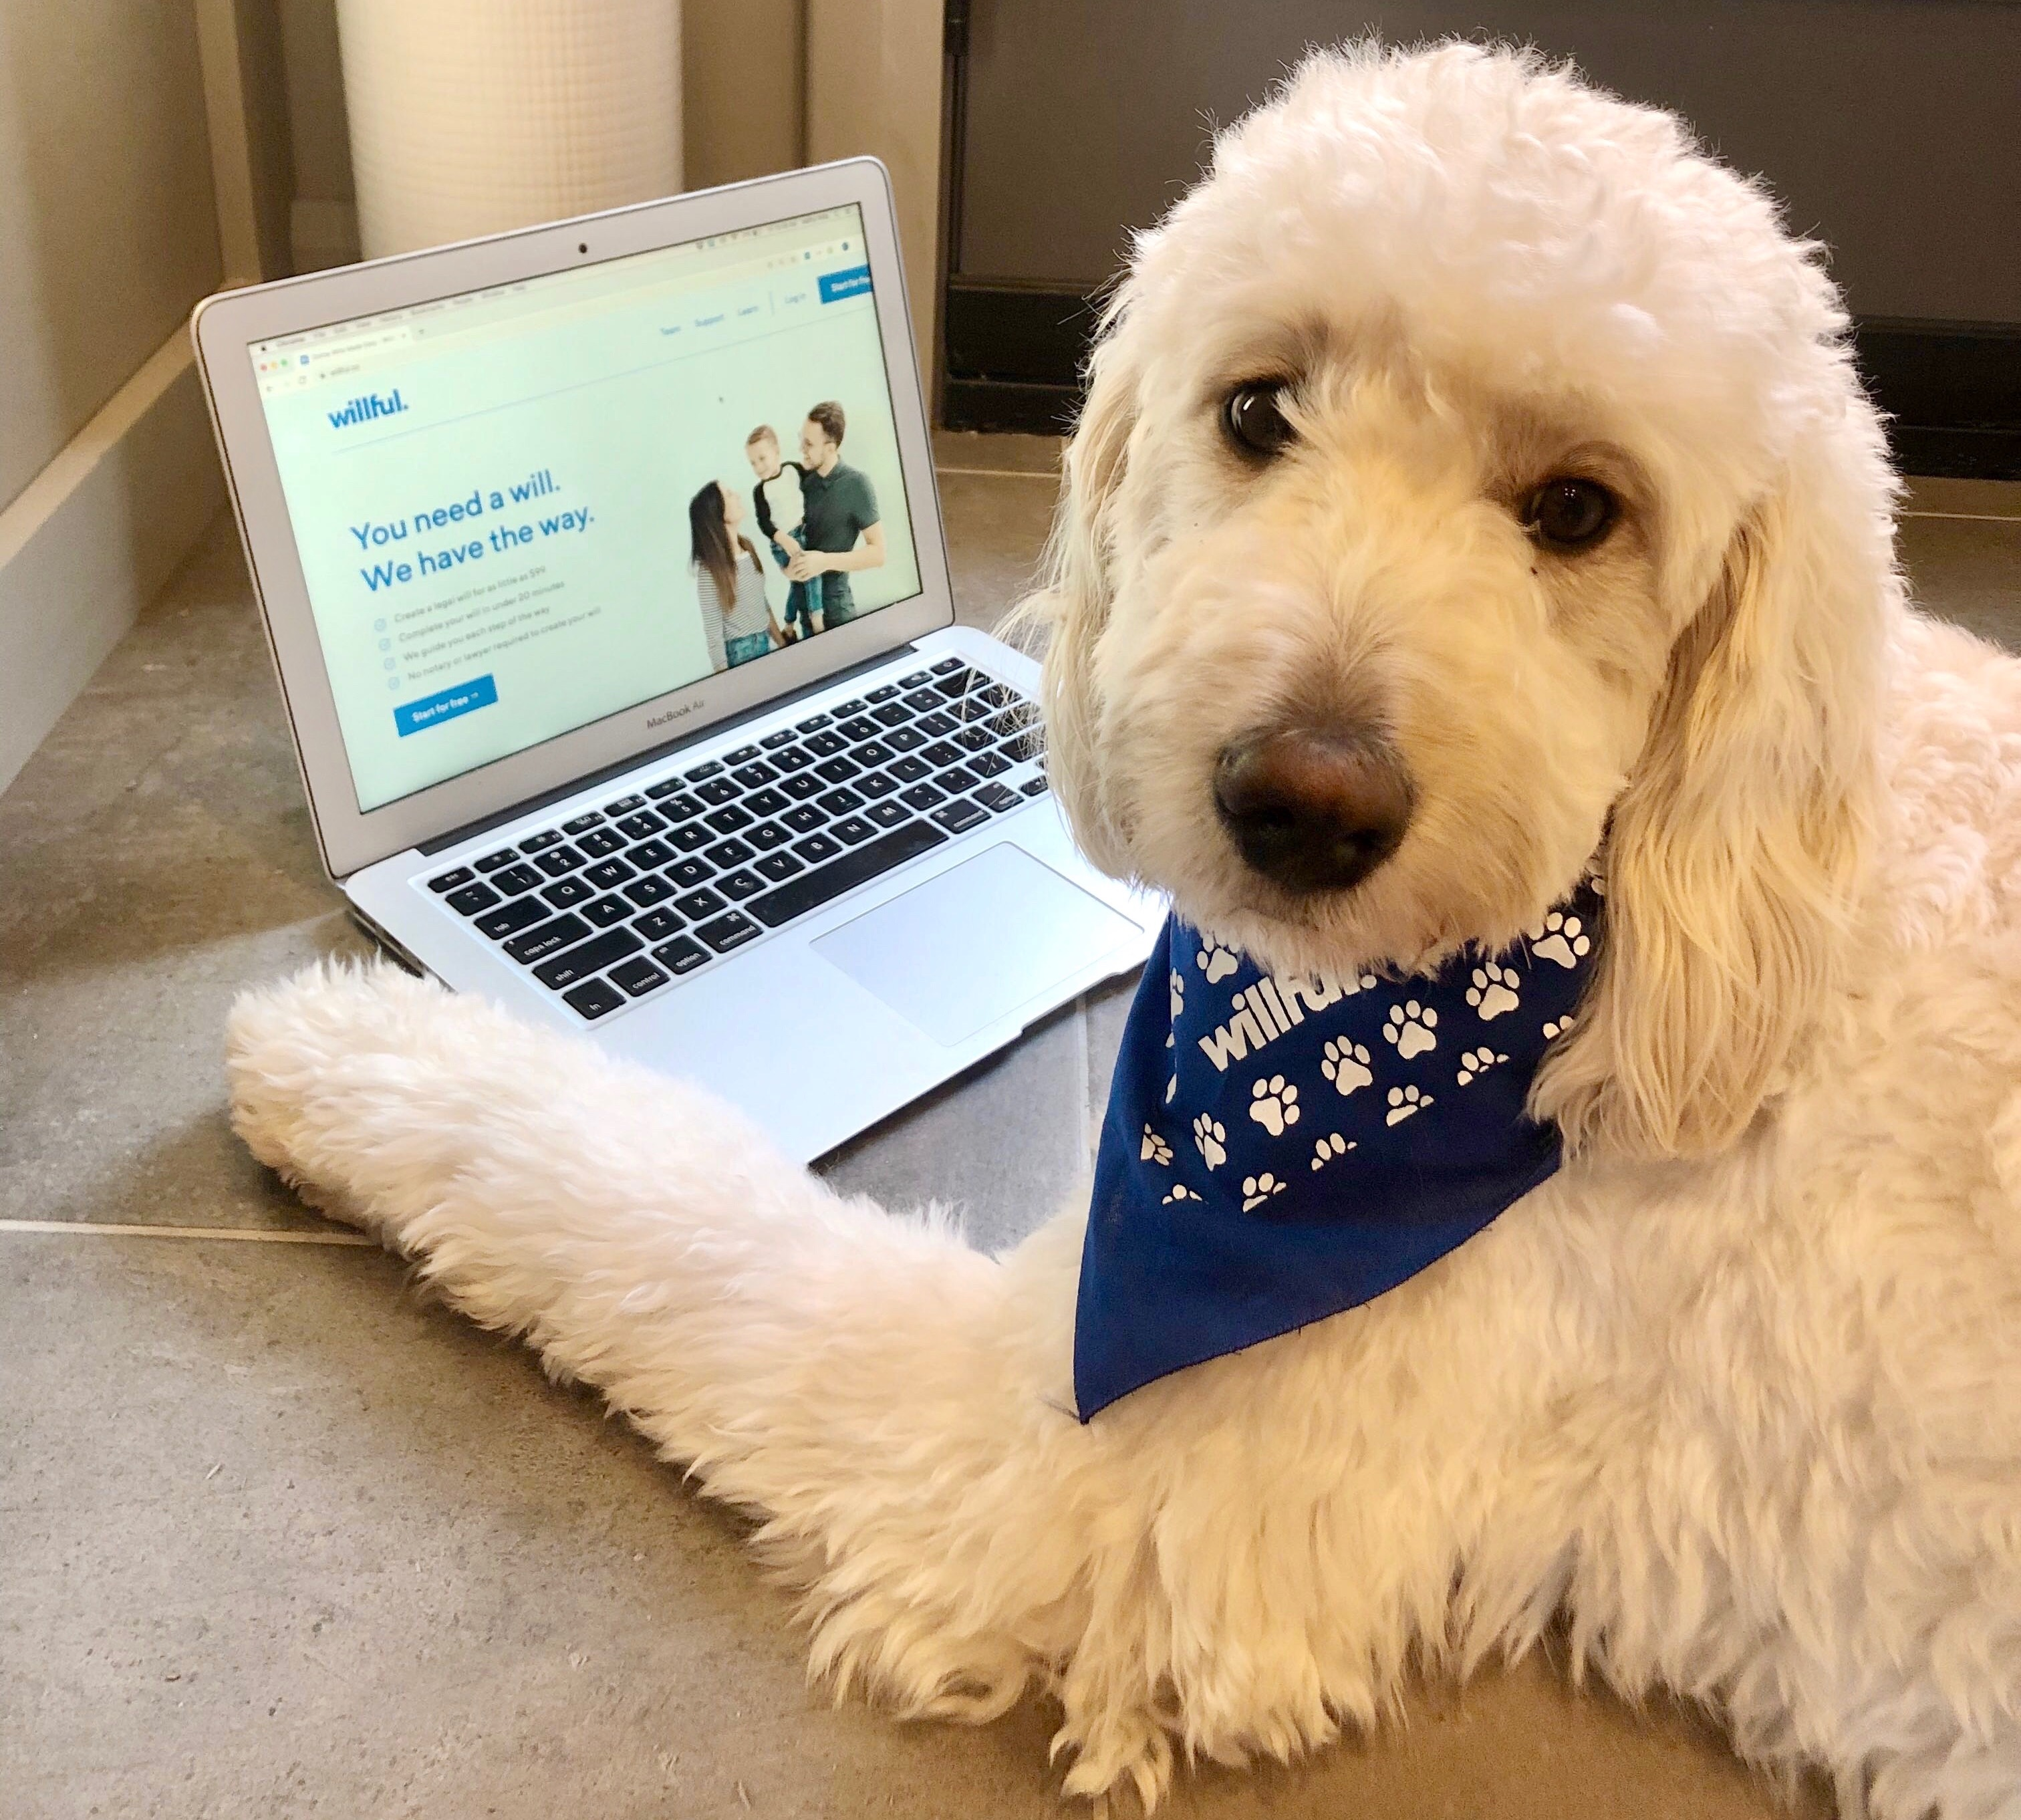 A dog posing with a laptop with Willful website on the screen